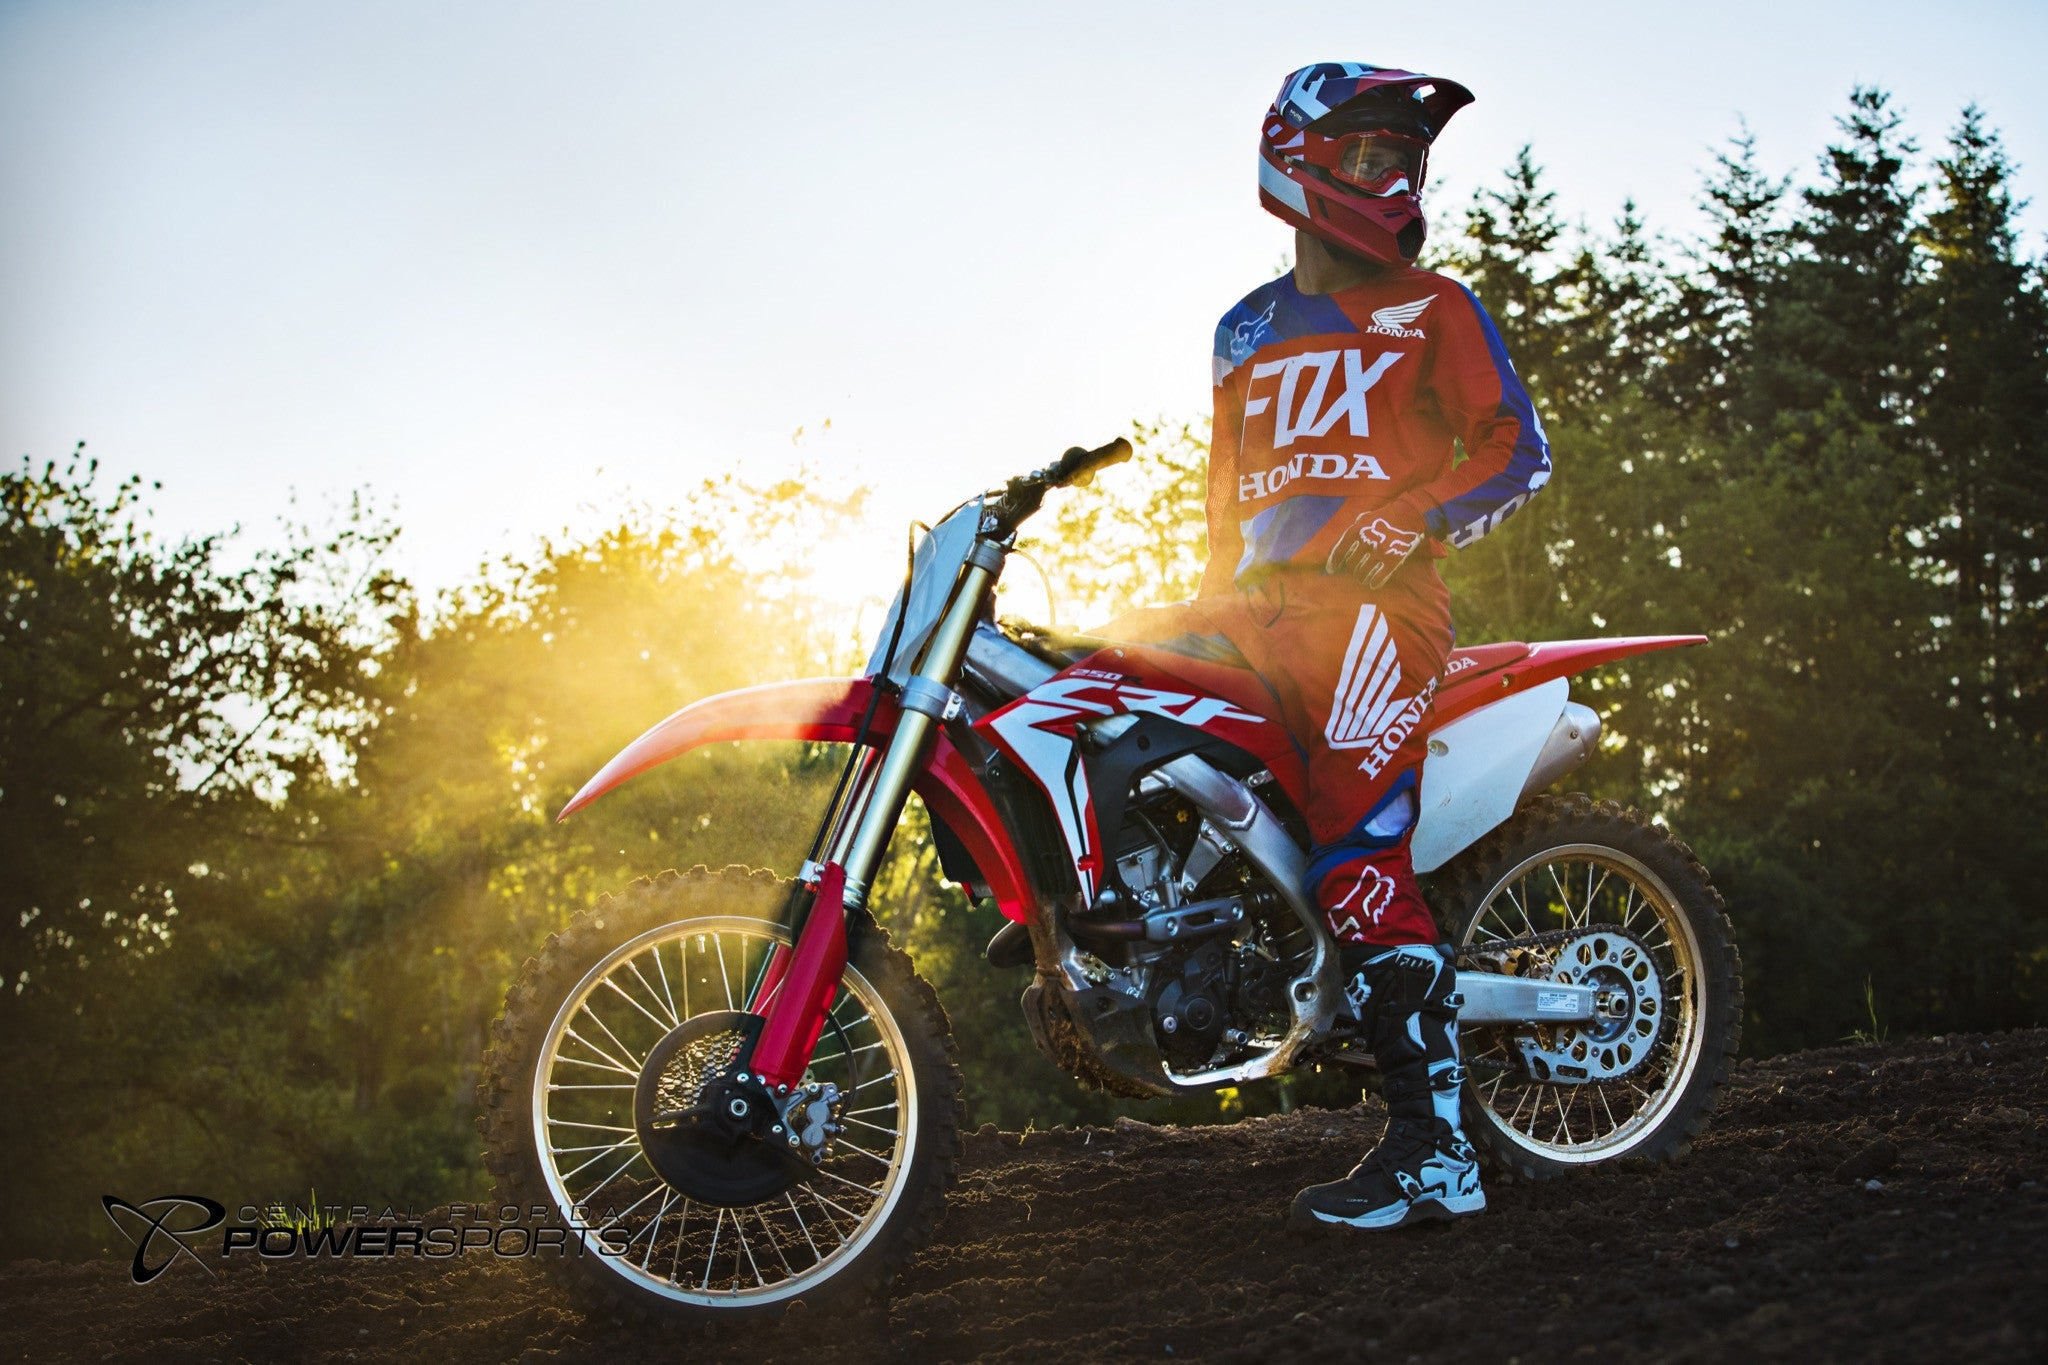 2018 Honda CRF250R - Orlando - Central Florida PowerSports - Kissimmee Motorcycle Dealership